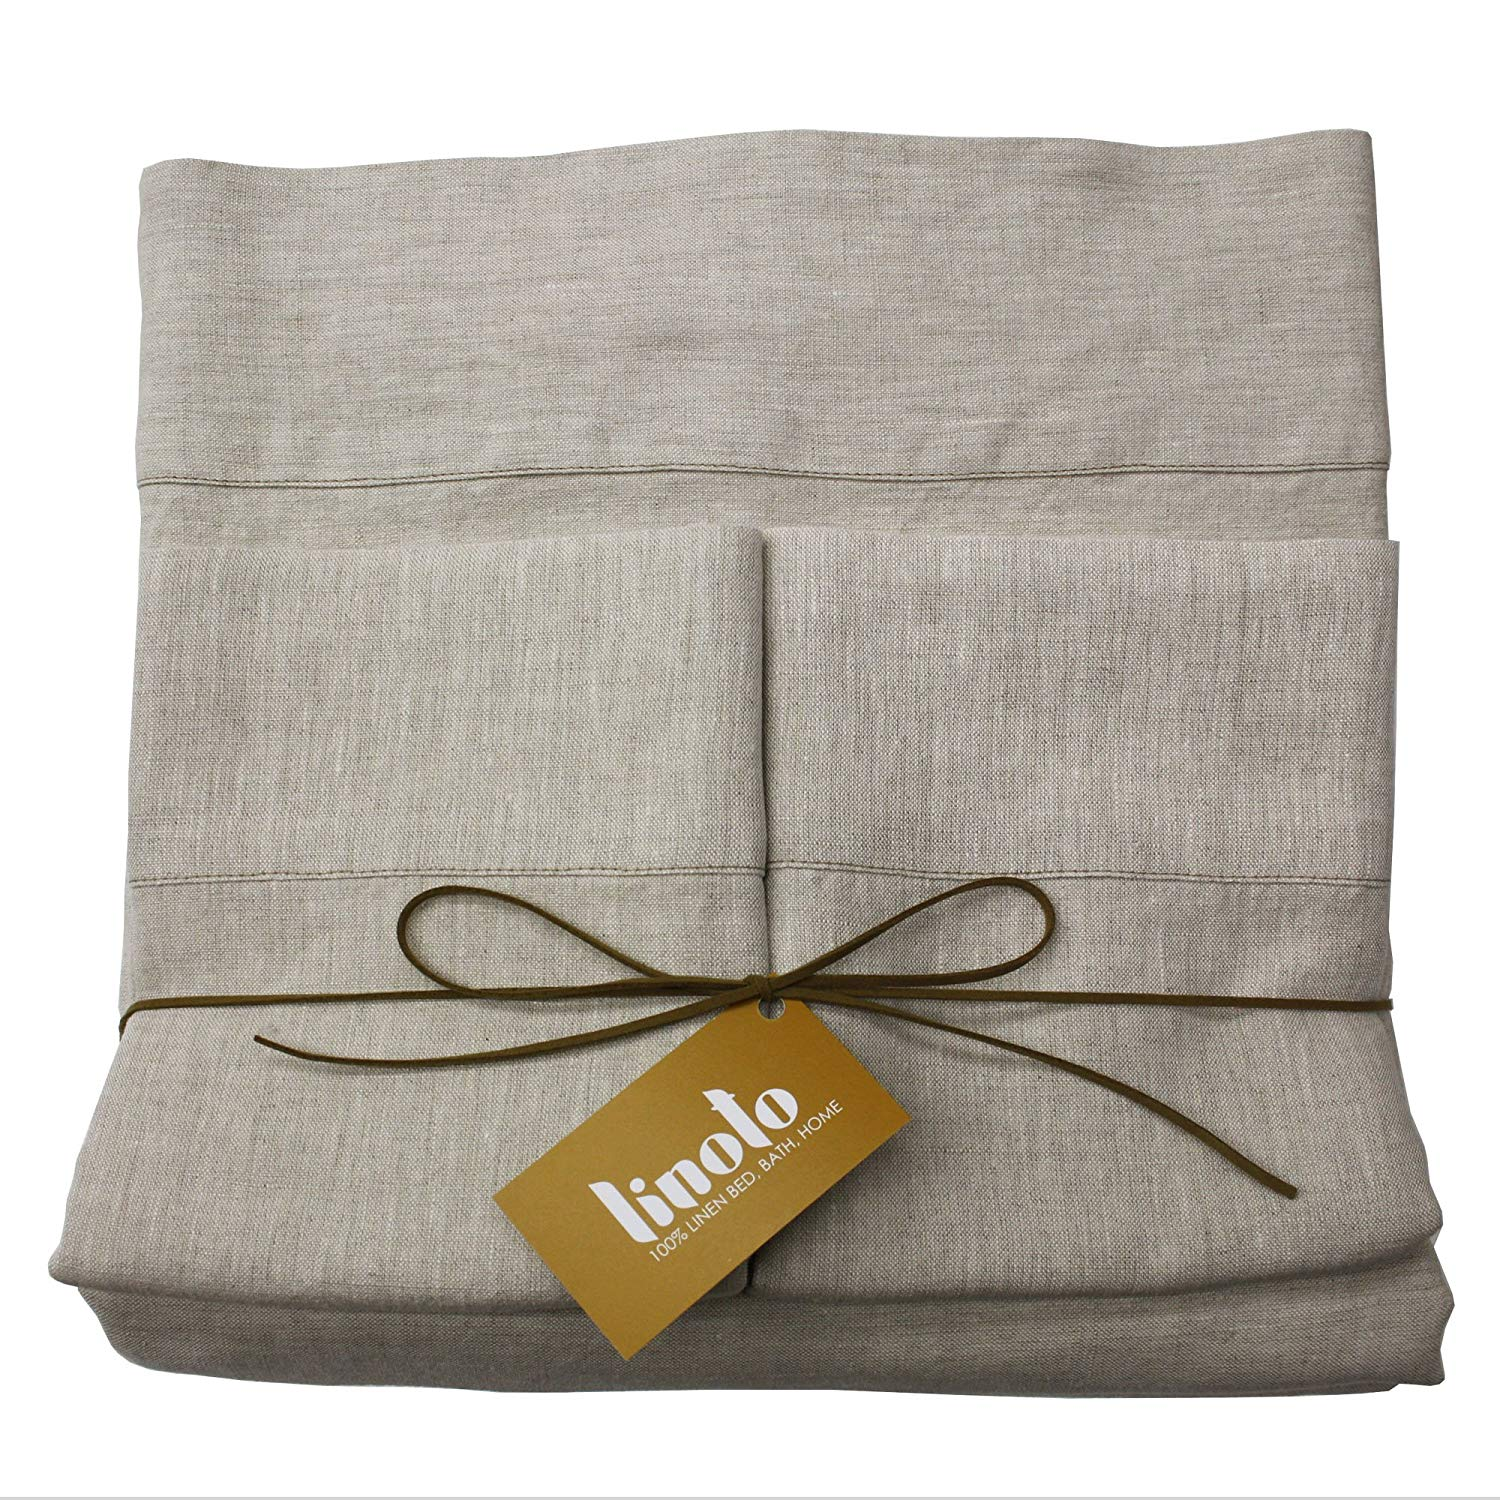 Image of Linoto 100% Linen Bed Sheet - Best Sheets for Night Sweats